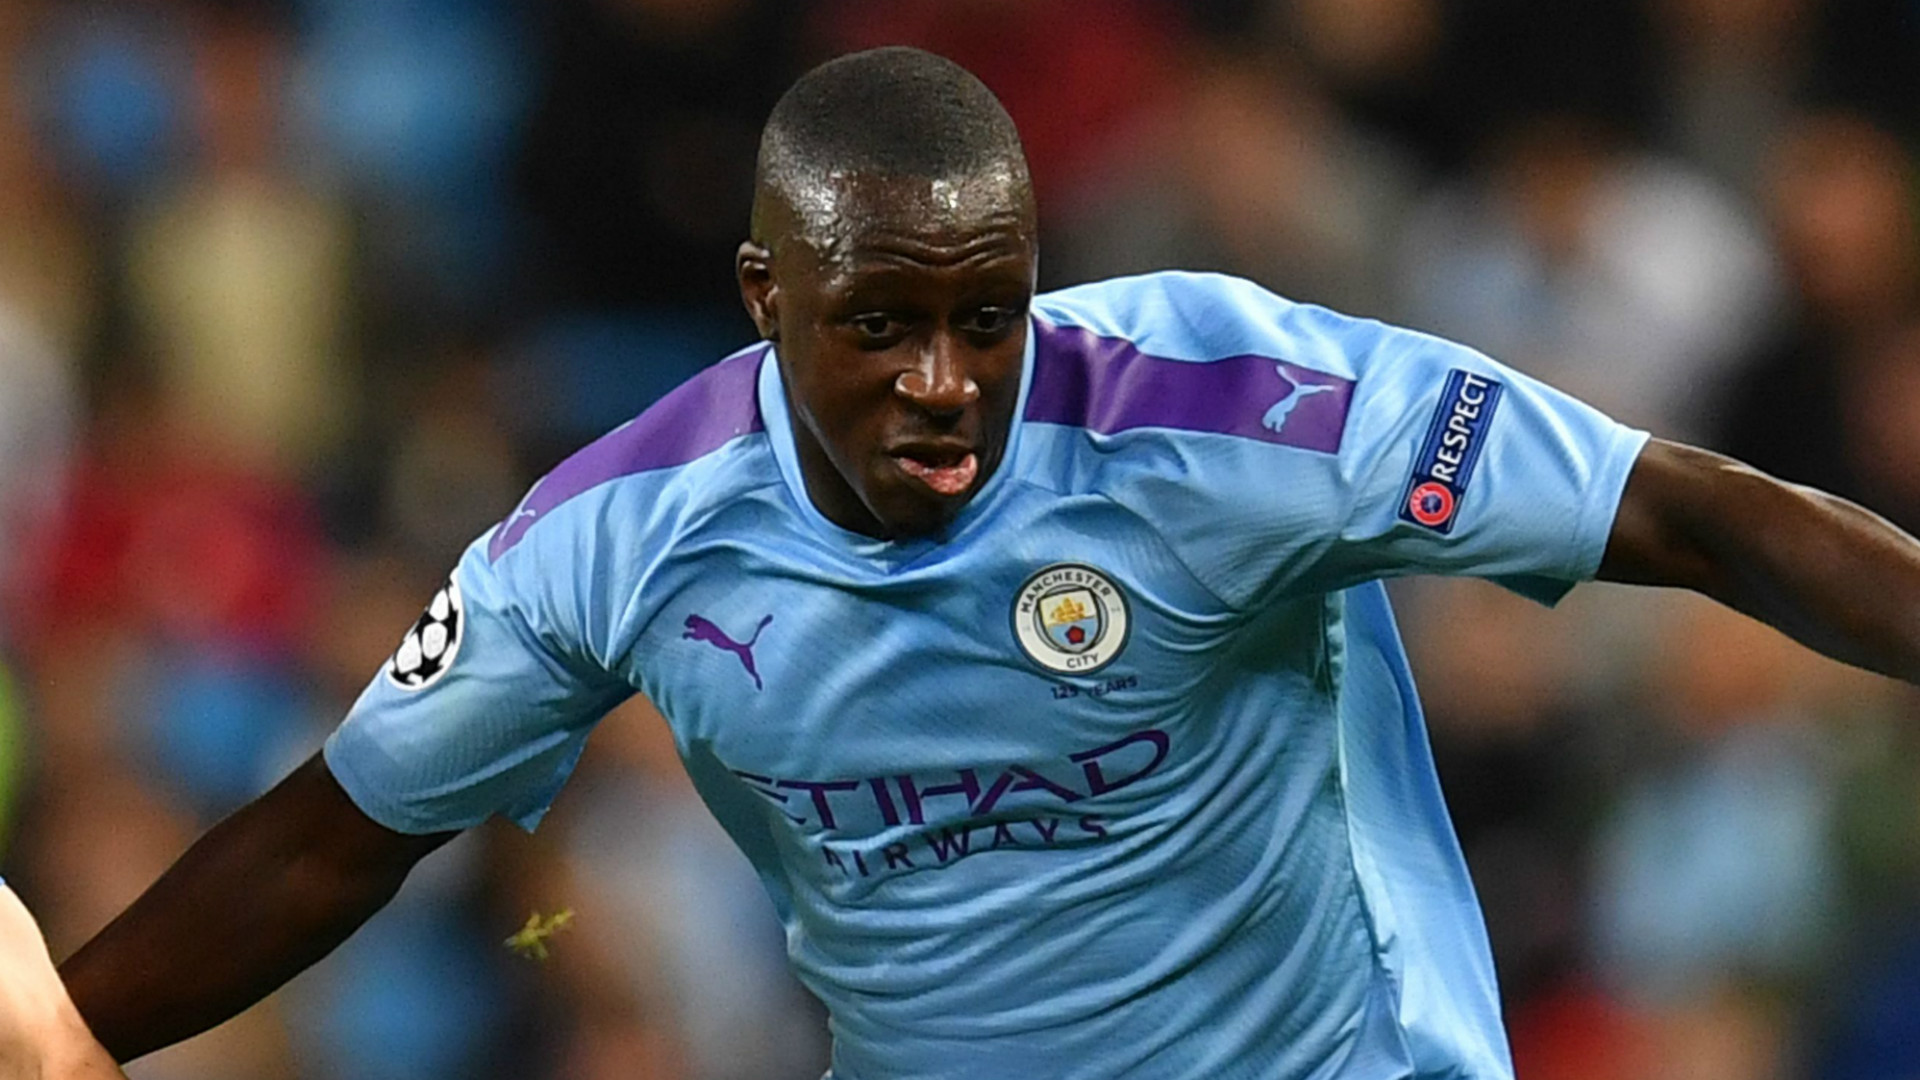 Man City 'disappointed' in Mendy after defender flouts Covid-19 rules to host New Year's Eve party